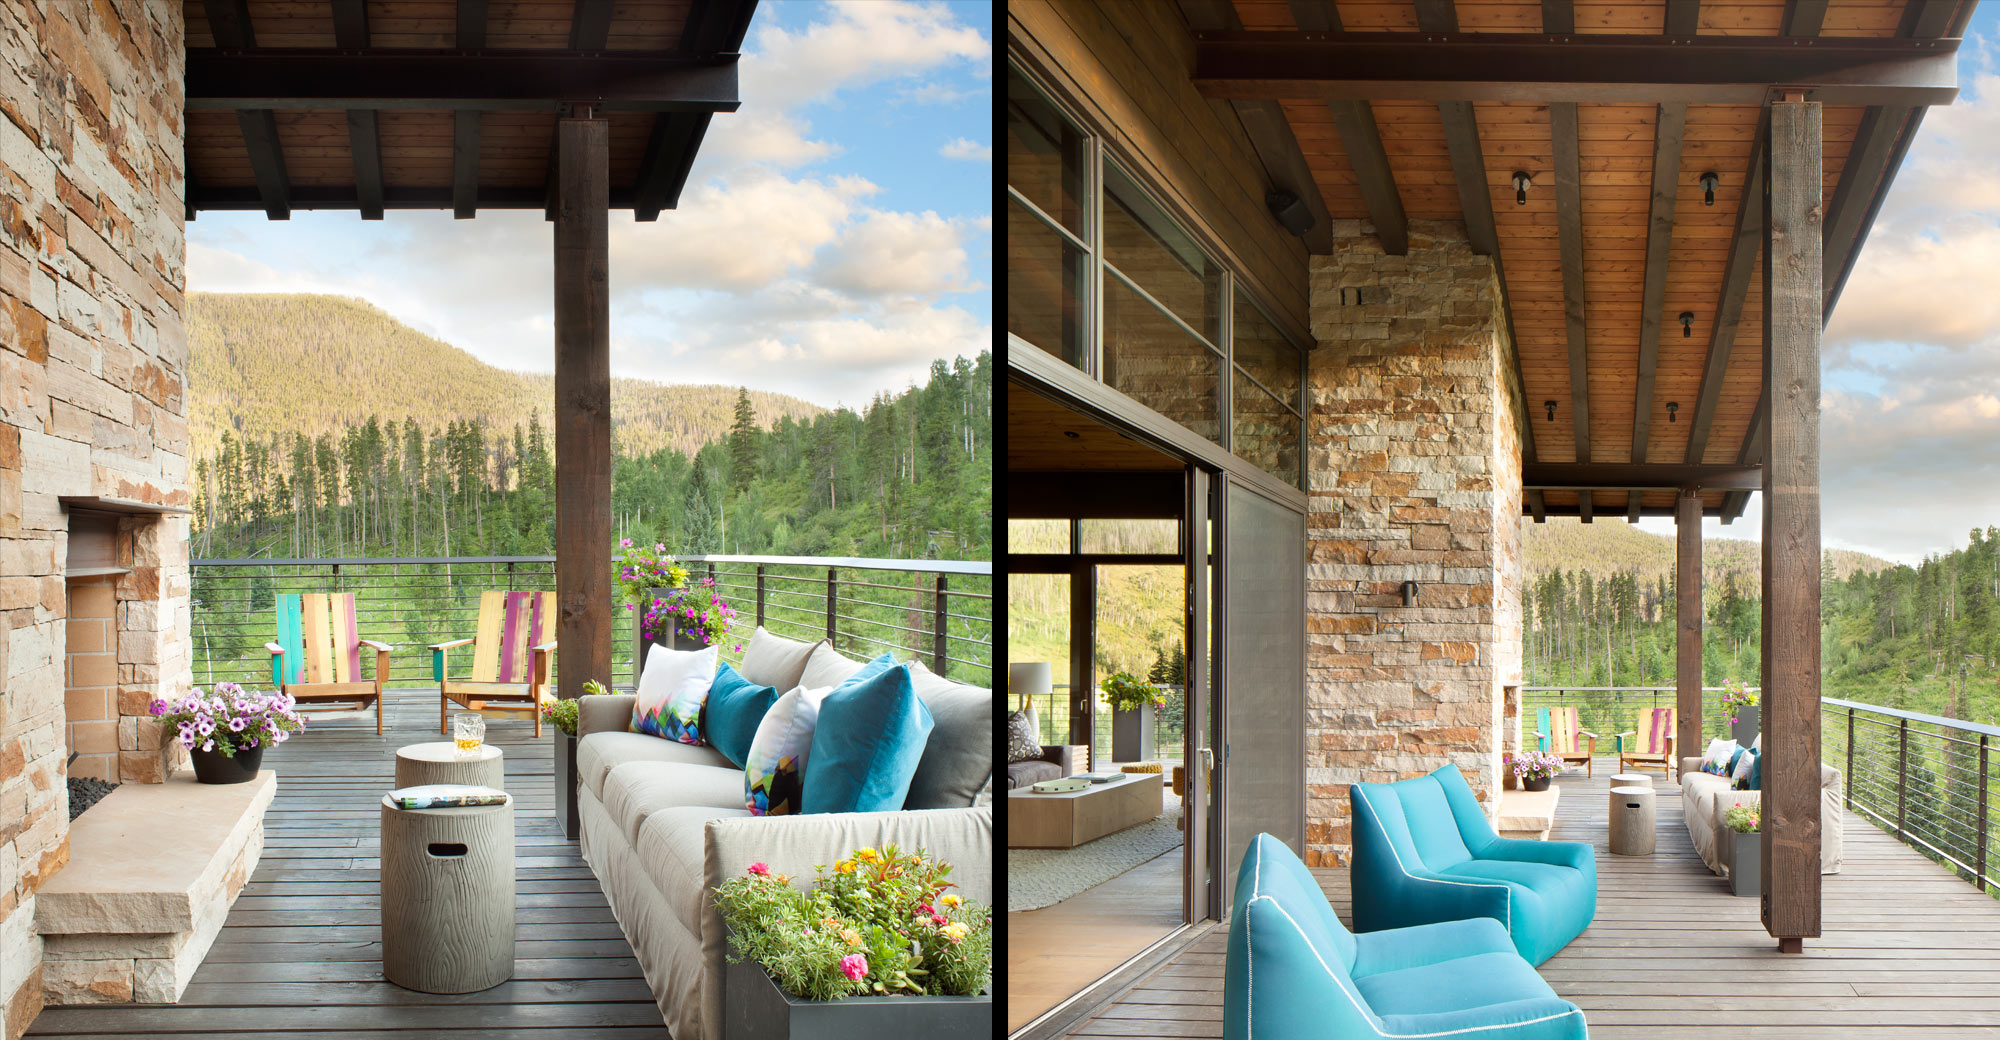 Vail Outdoor fireplace with Mountain Views